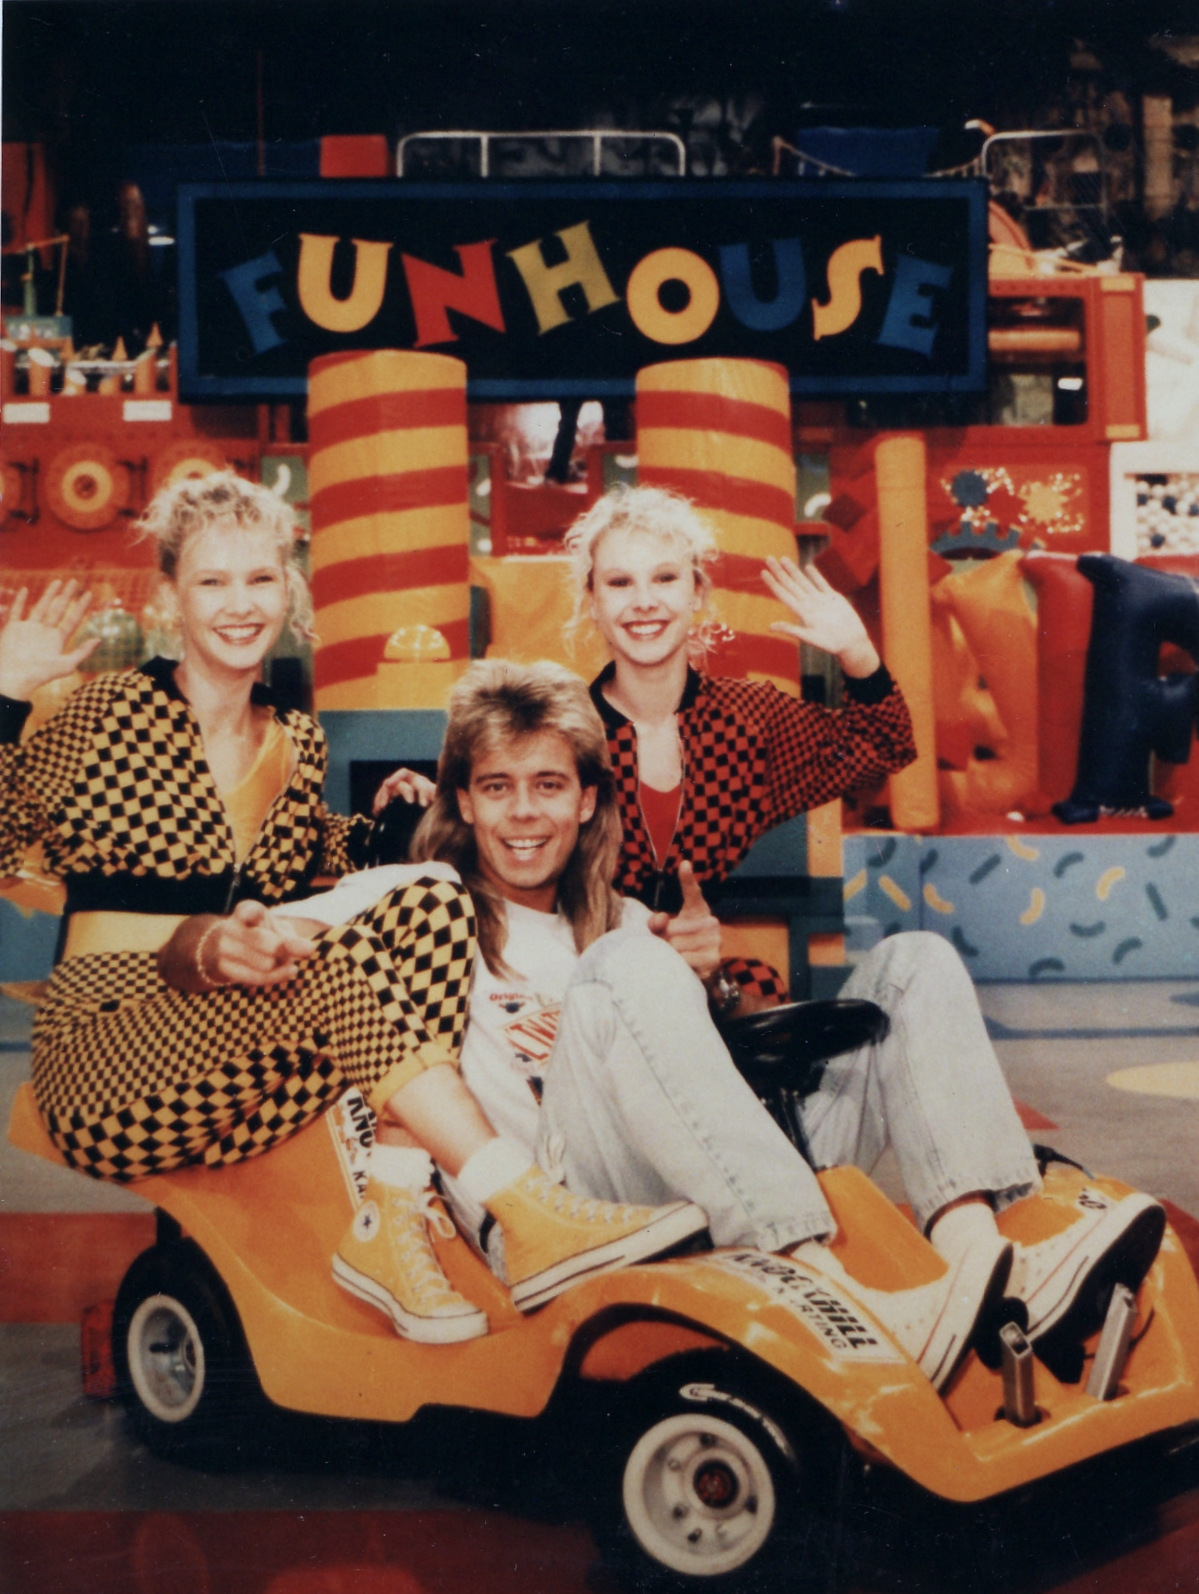 Fun house beats knightmare to be named best ever classic for Classic house beats